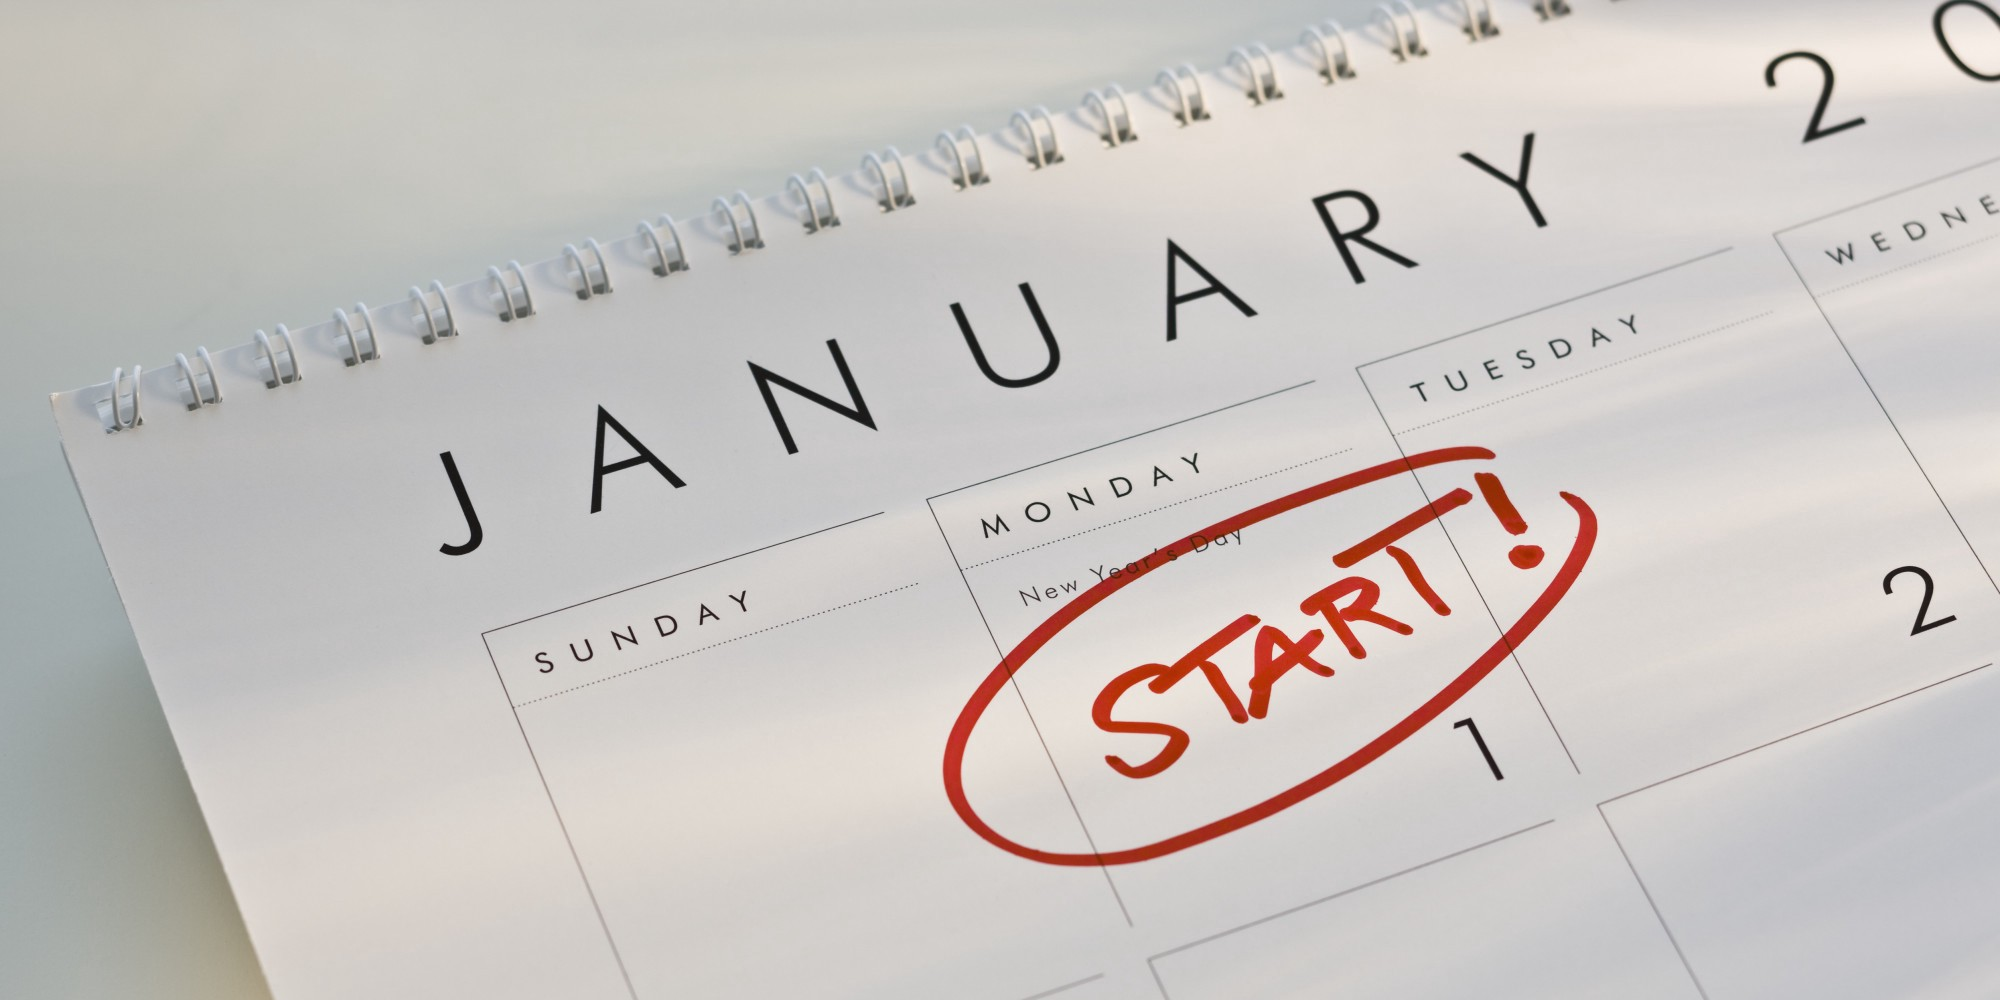 10 Reasons Why New Year's Resolutions Fail forecasting